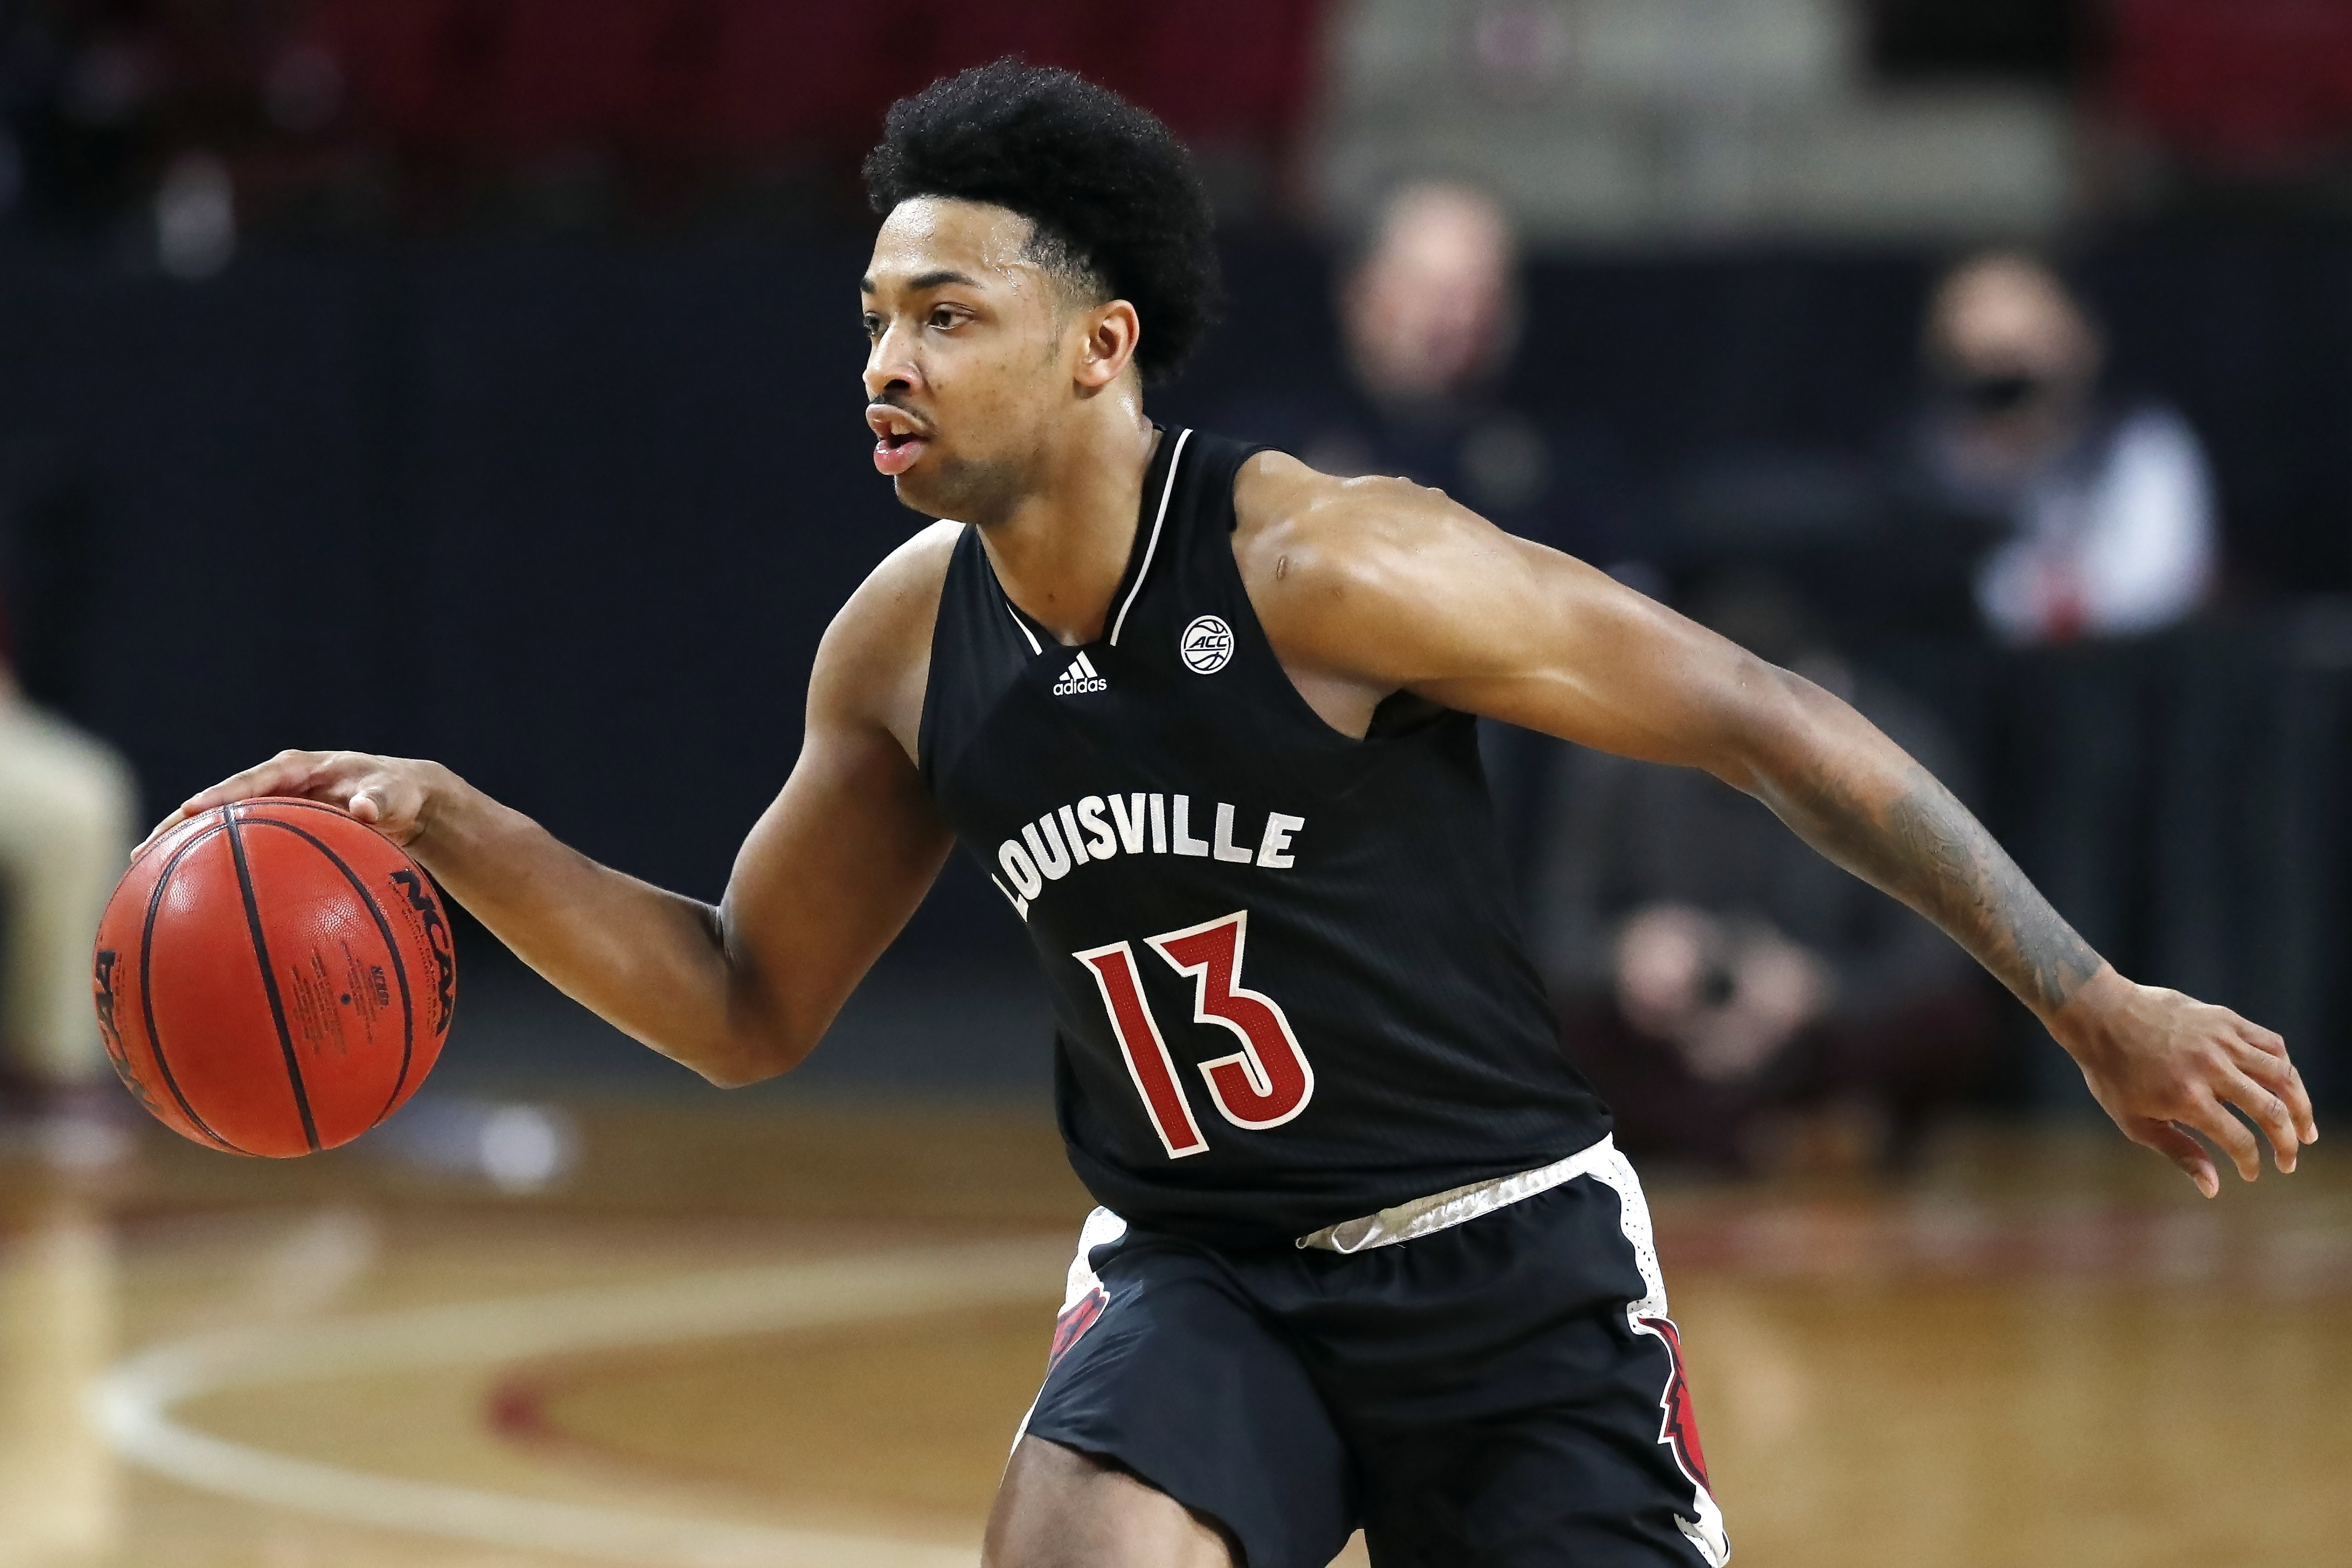 Louisville's David Johnson plays against Boston College during the first half of an NCAA college basketball game, Saturday, Jan. 2, 2021, in Boston.